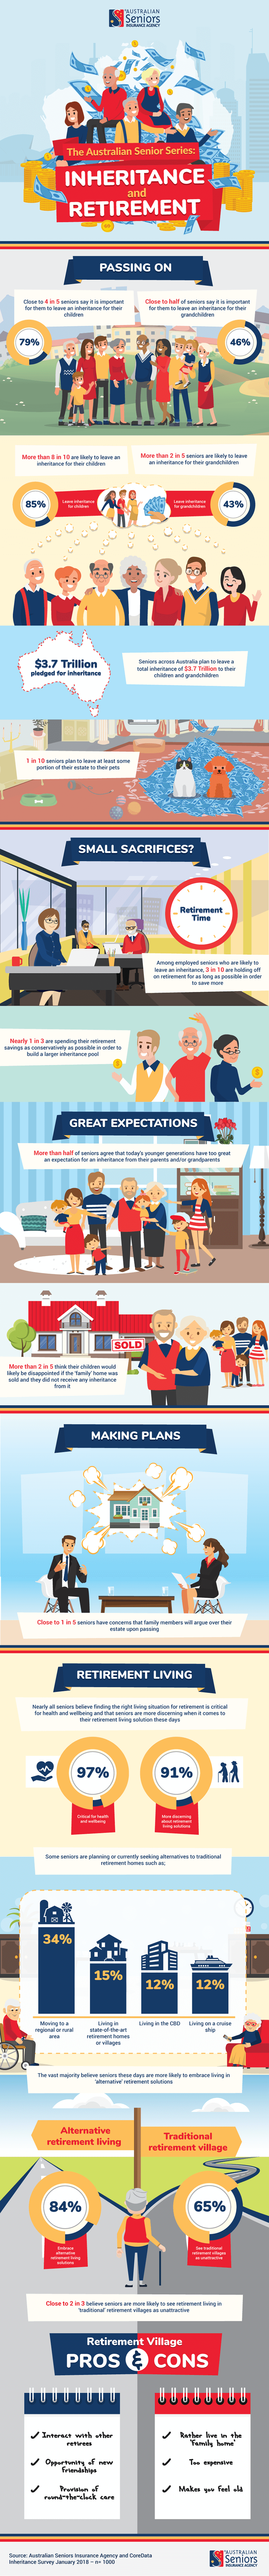 Inheritance & Retirement [infographic]